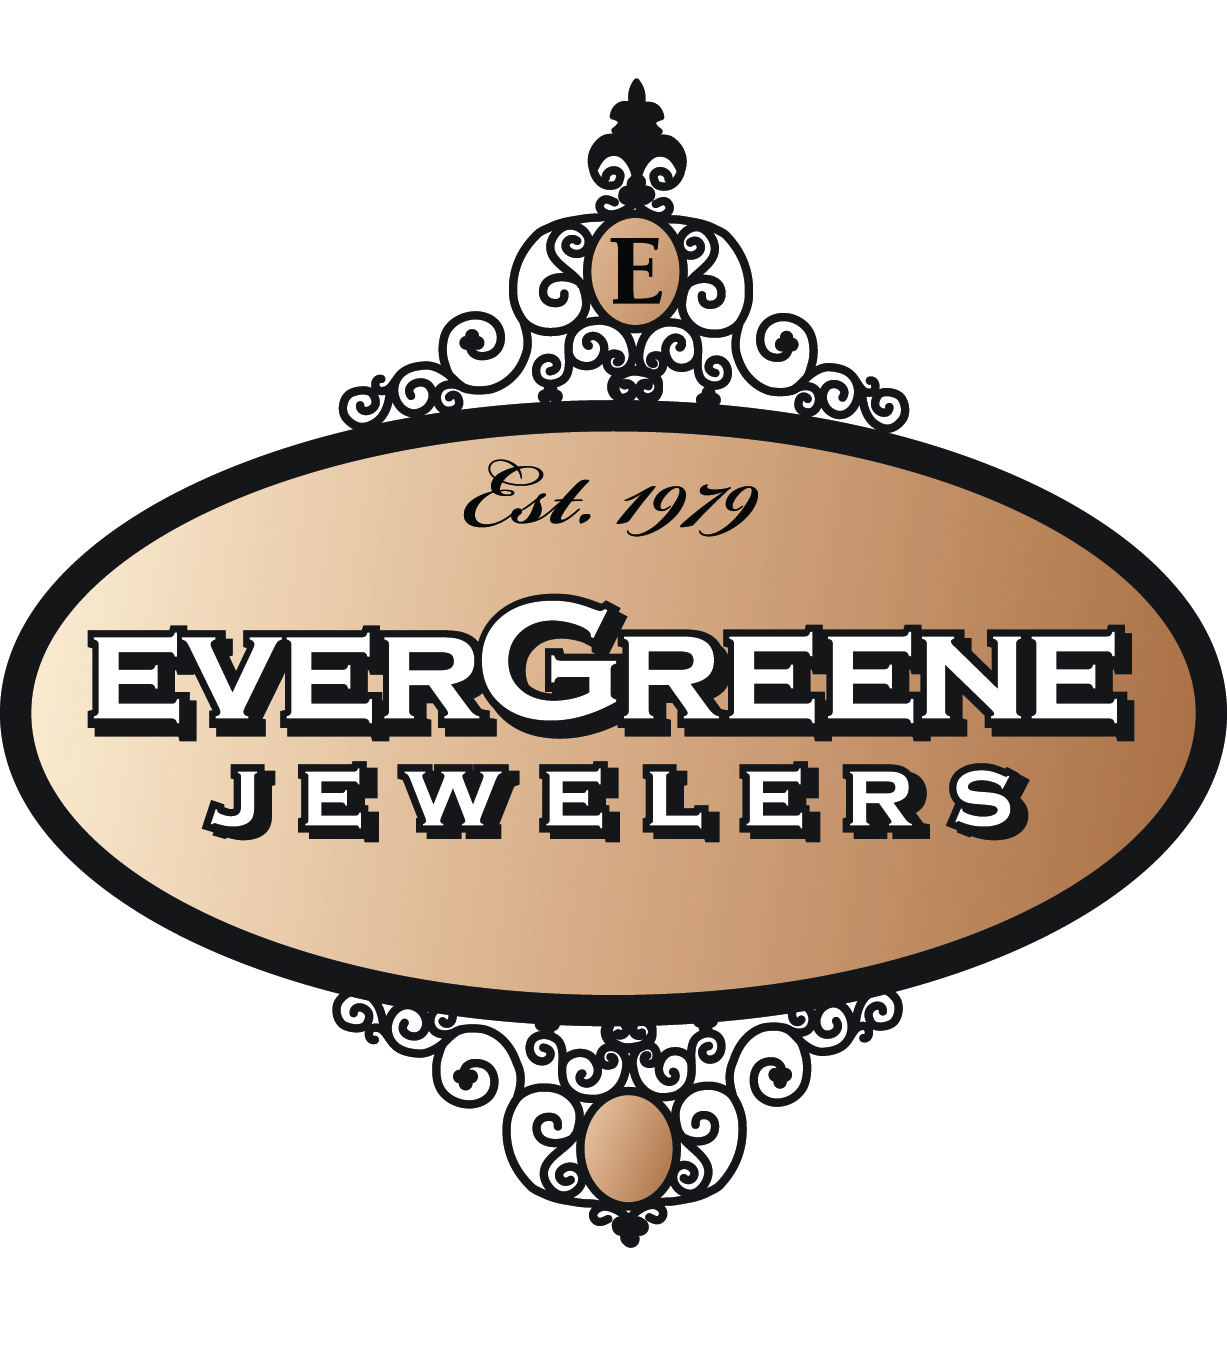 Evergreene Jewelers